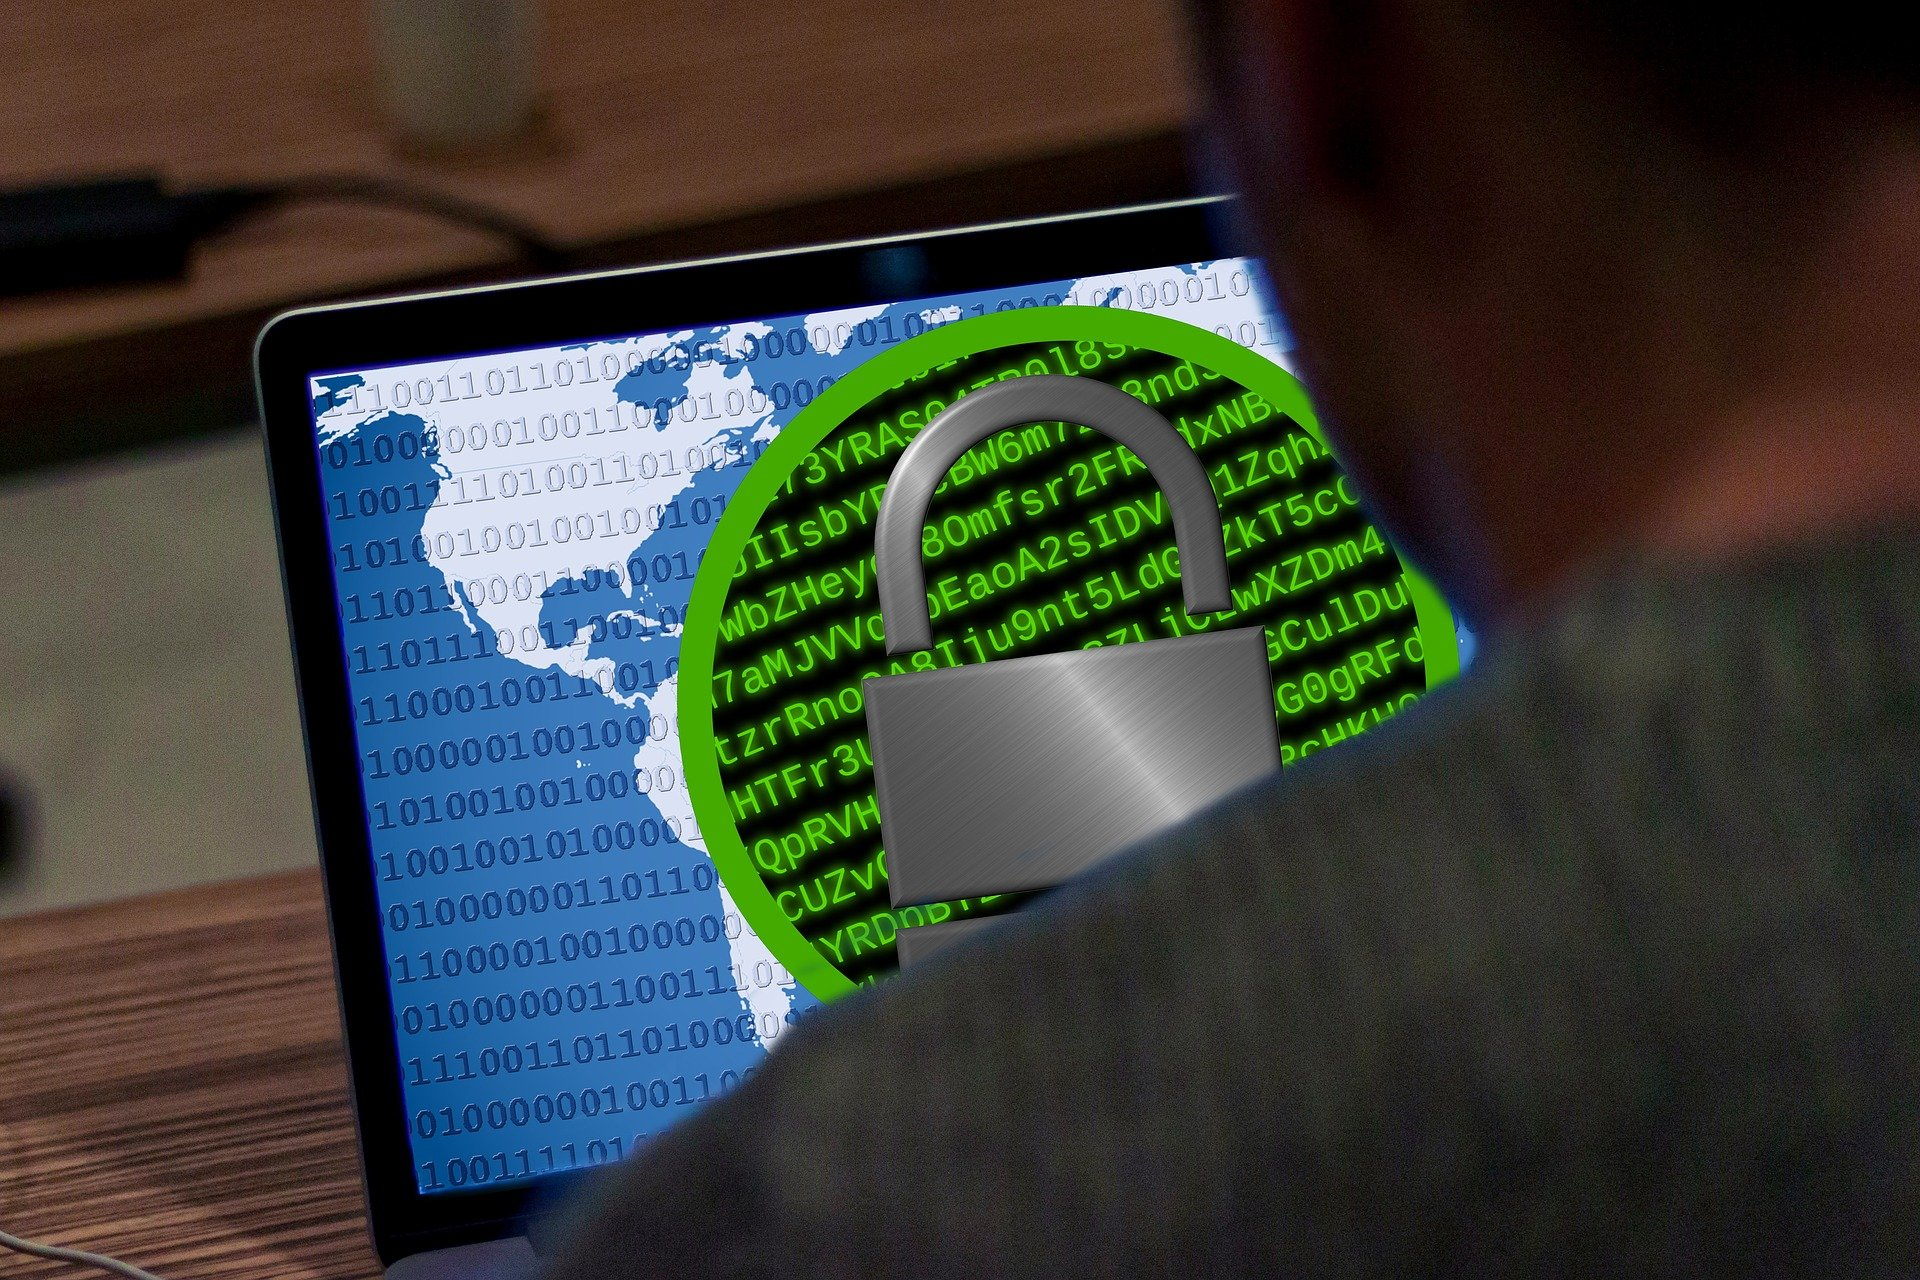 ransomware IT security